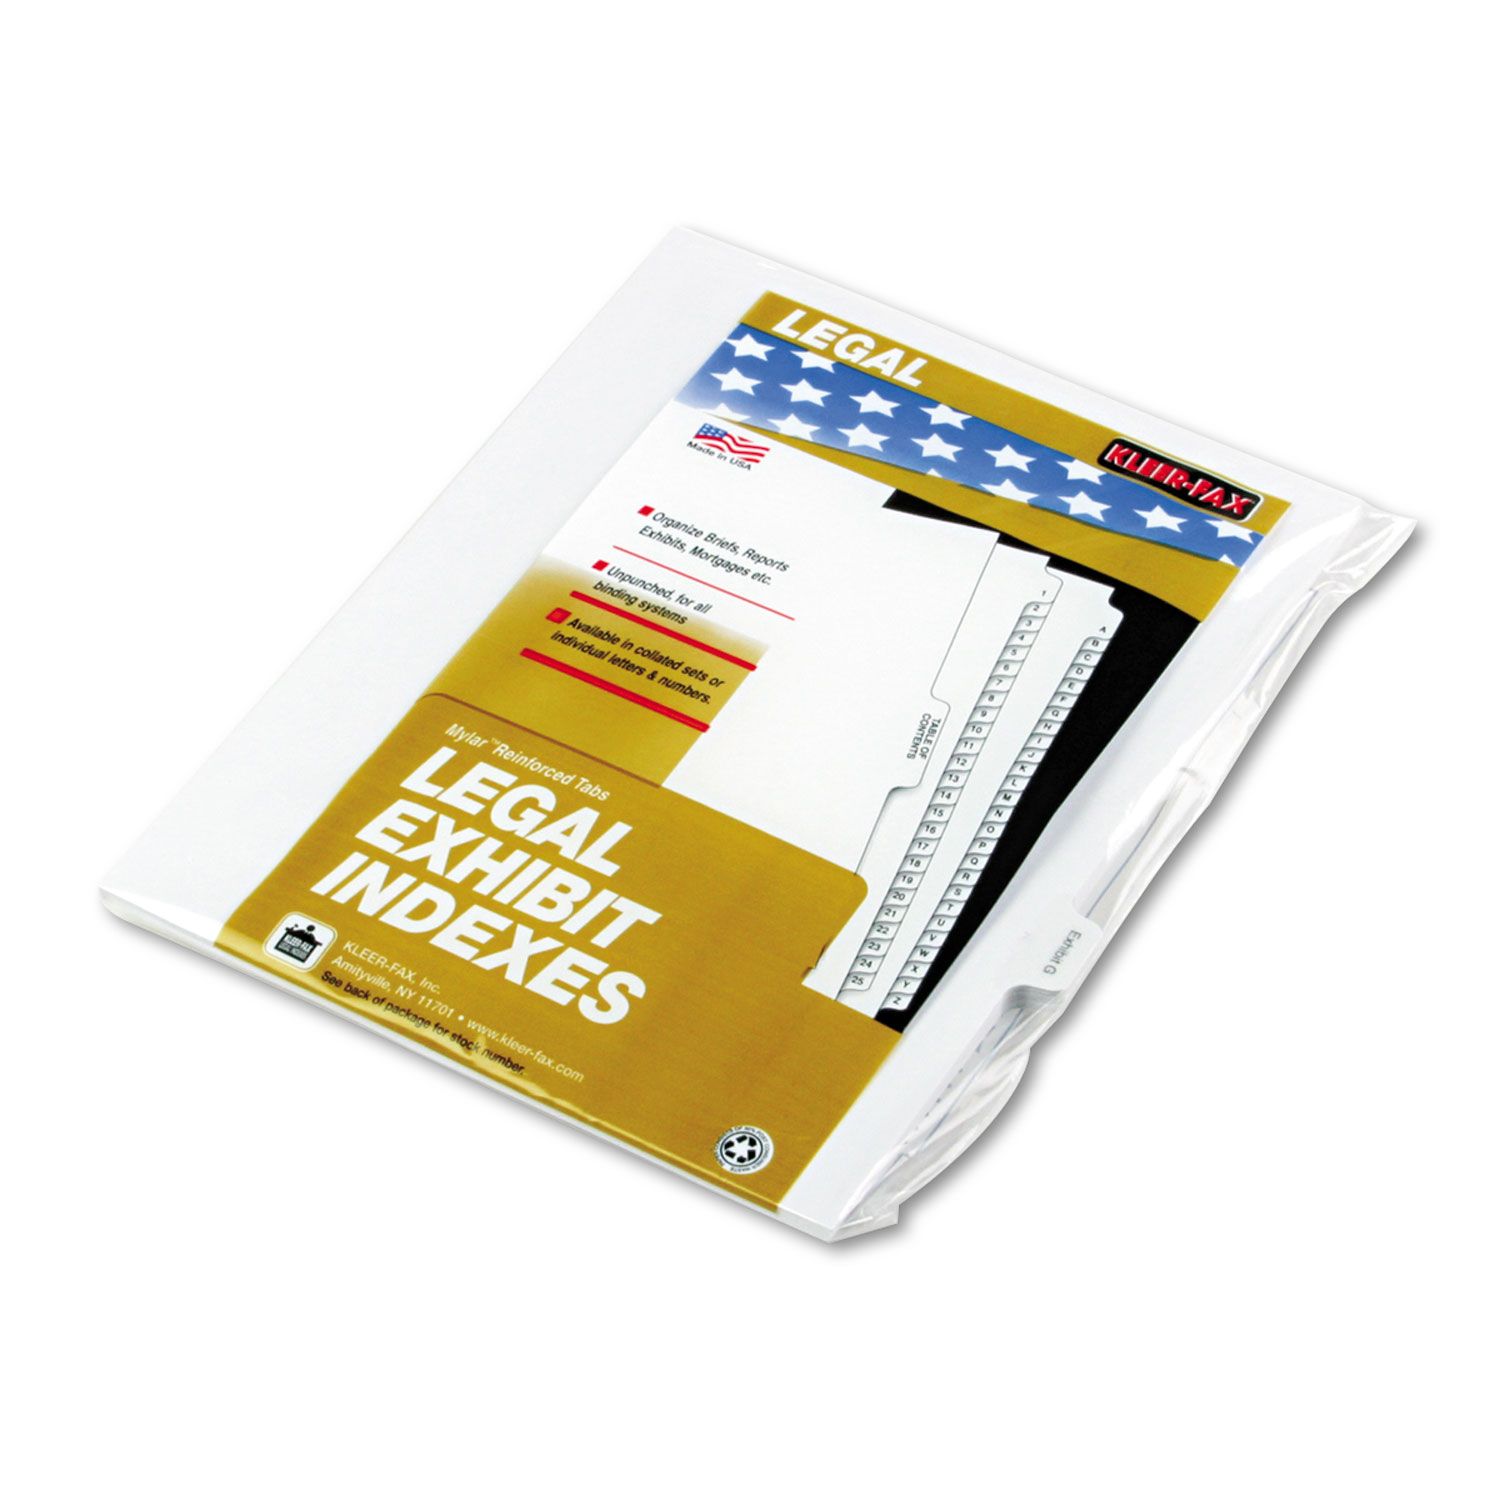 "90000 Series Legal Exhibit Index Dividers, 1 10 Cut Tab, ""Exhibit G\ by Kleer-Fax"